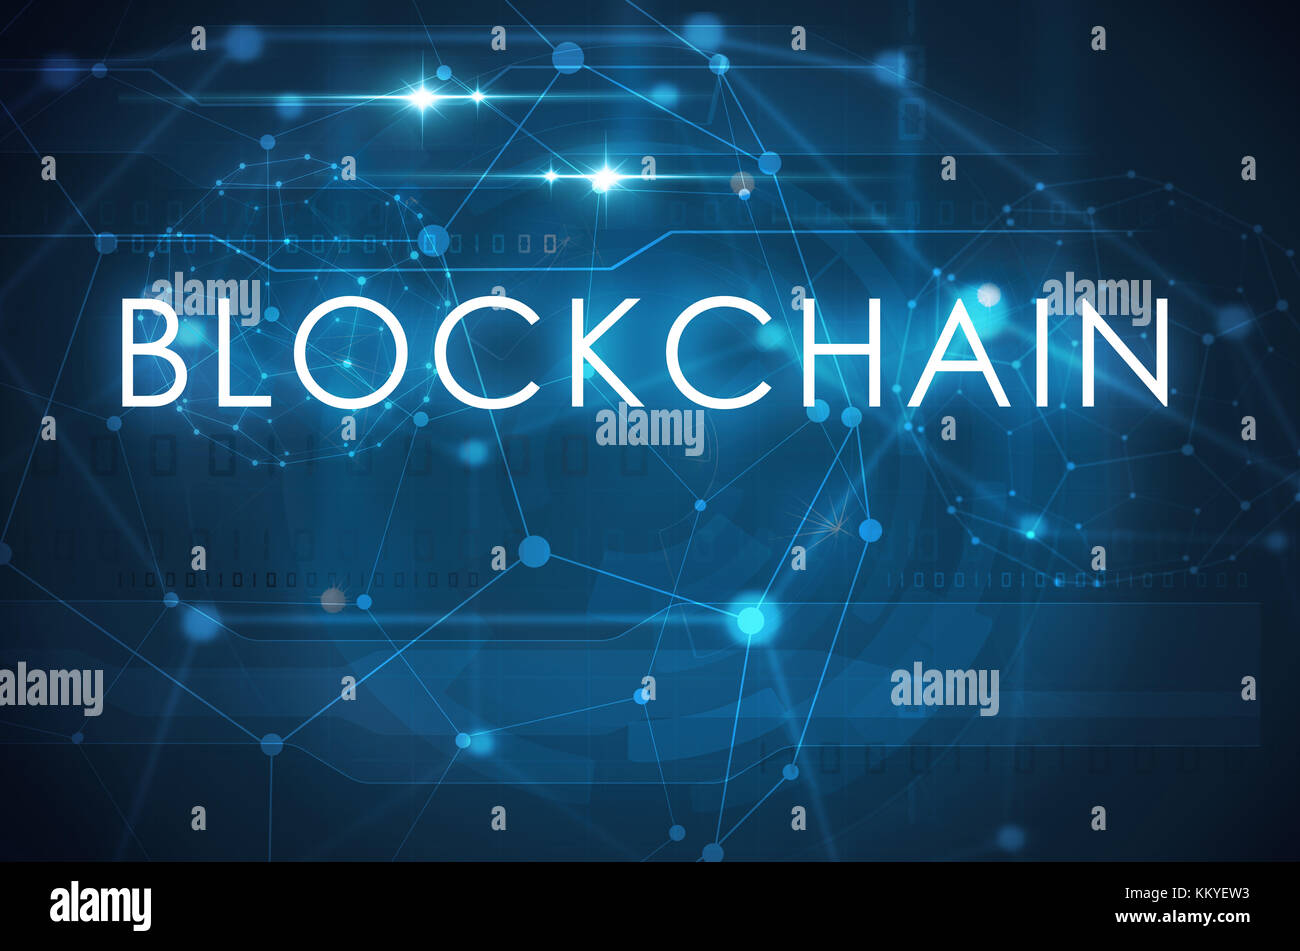 Image result for photos of blockchain